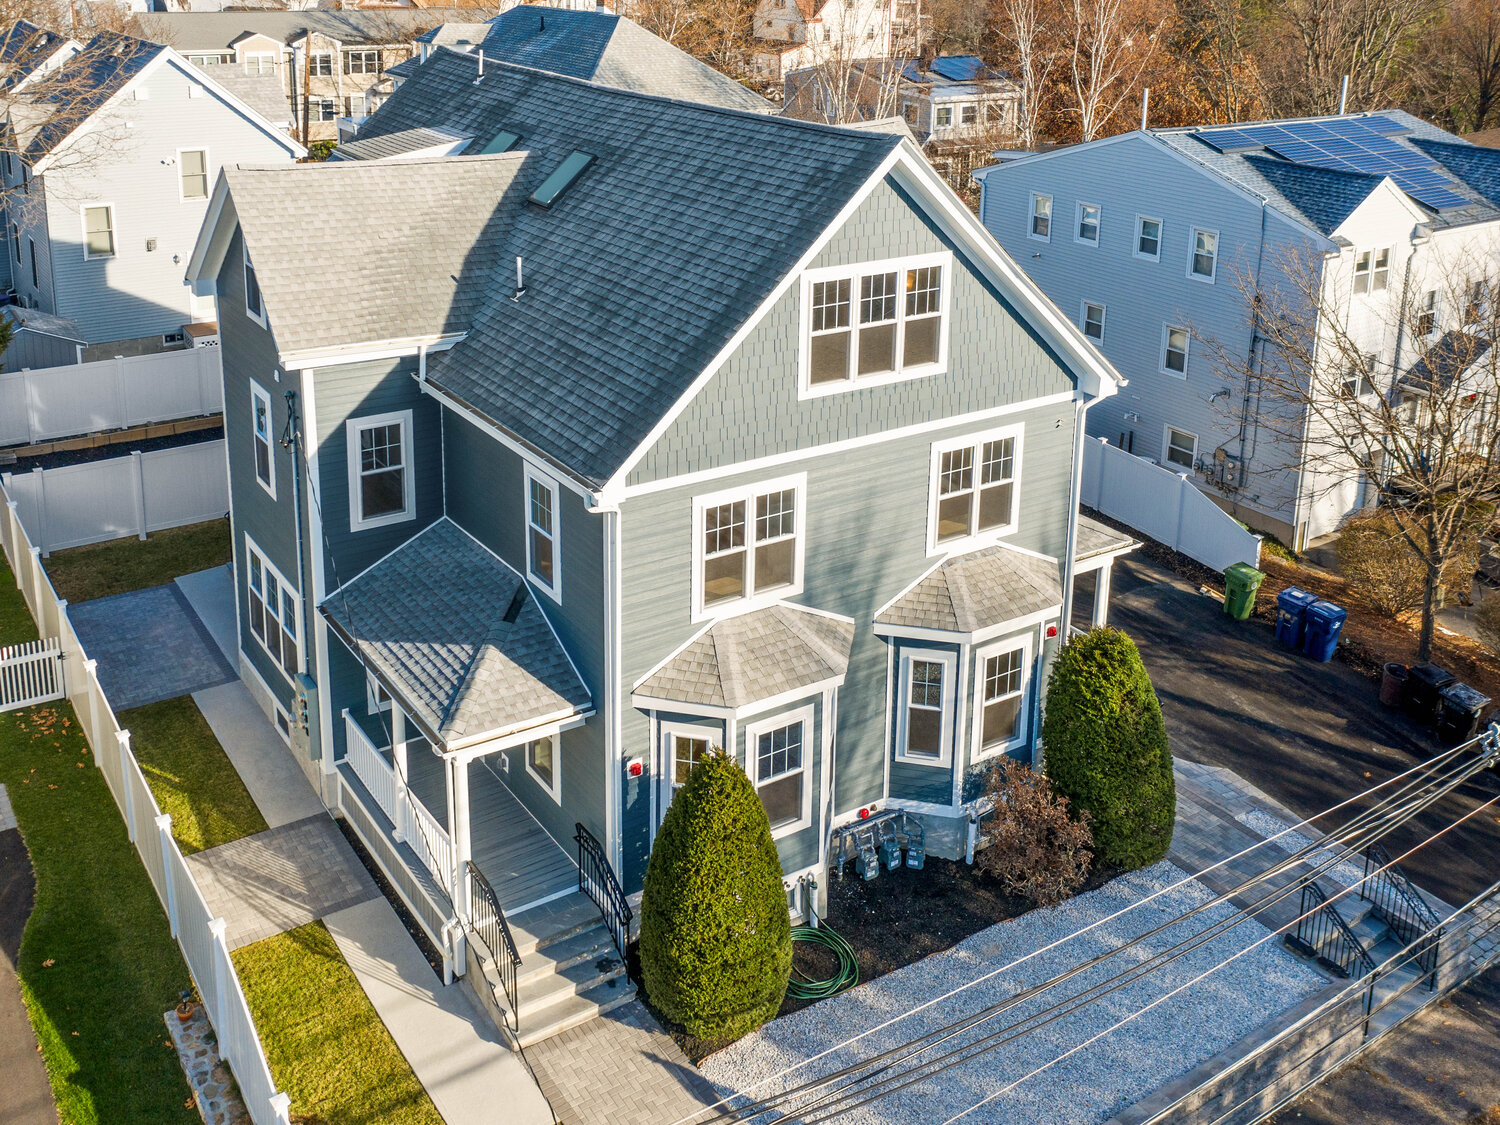 OPEN HOUSES FOR 2 CYPRESS CONDOS IN WATERTOWN MA 02472